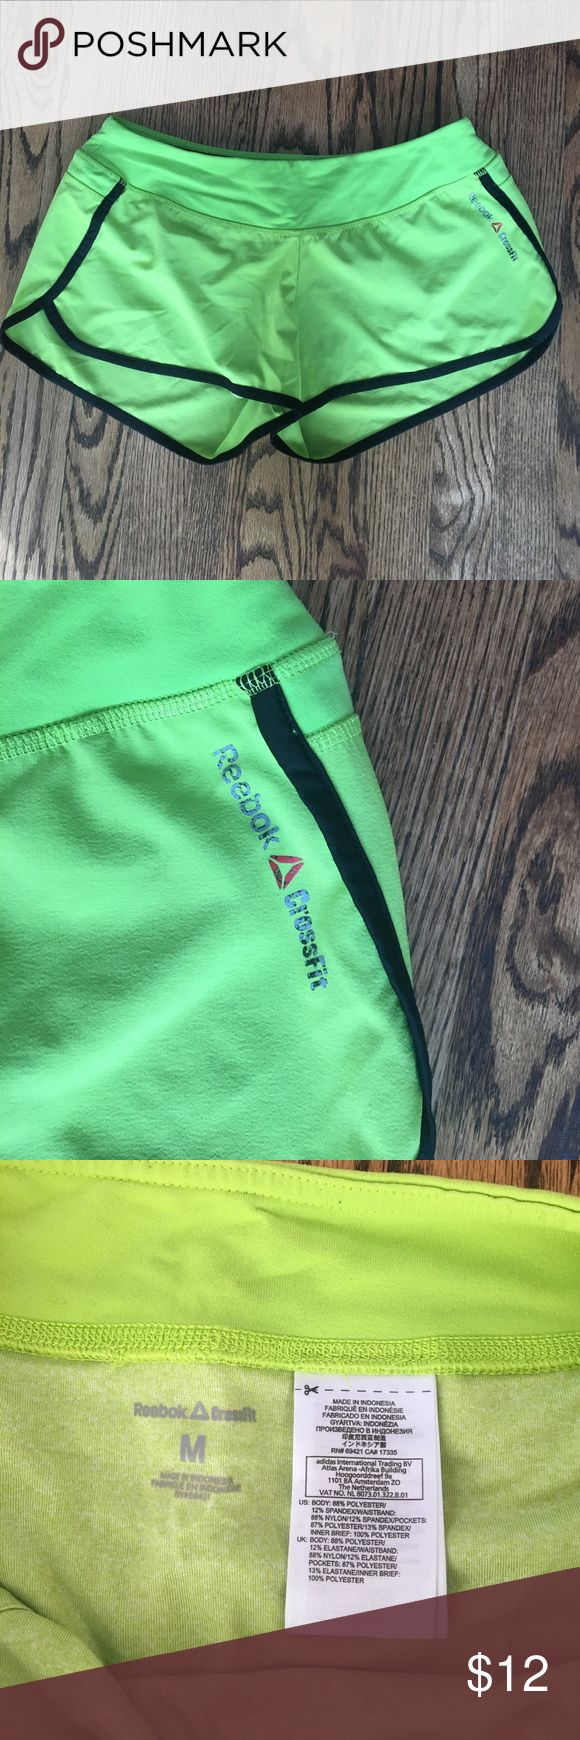 Reebok crossfit lime shorts size M Lime green athletic shorts. Perfect for running or cross training. Great condition. Reebok Shorts